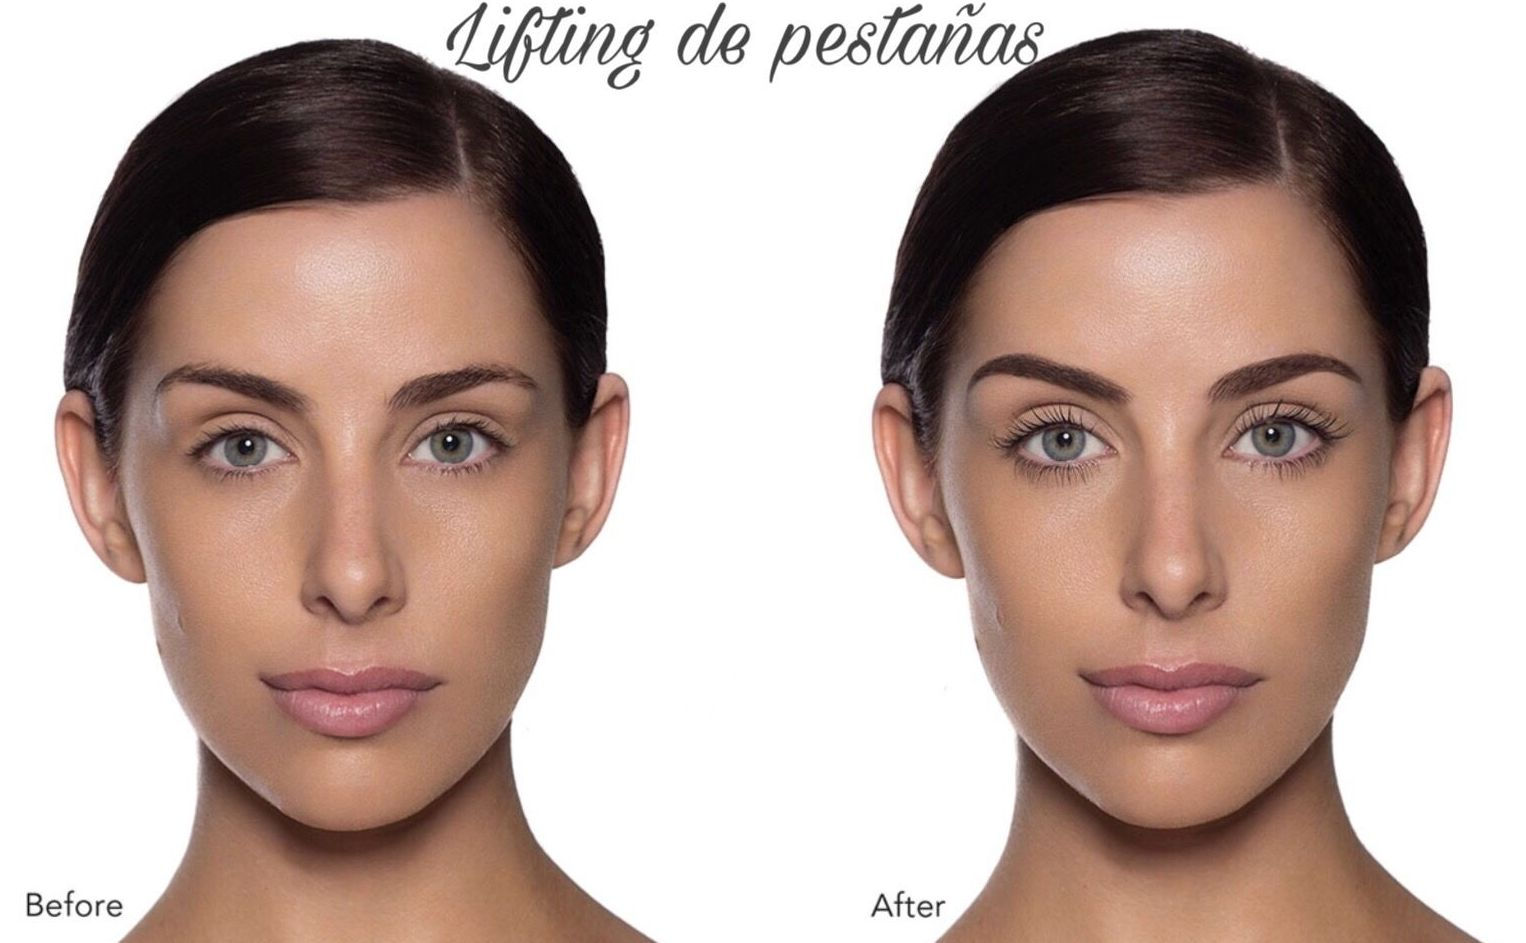 Lifting de pestañas: Servicios de Bellissima Beauty Spa